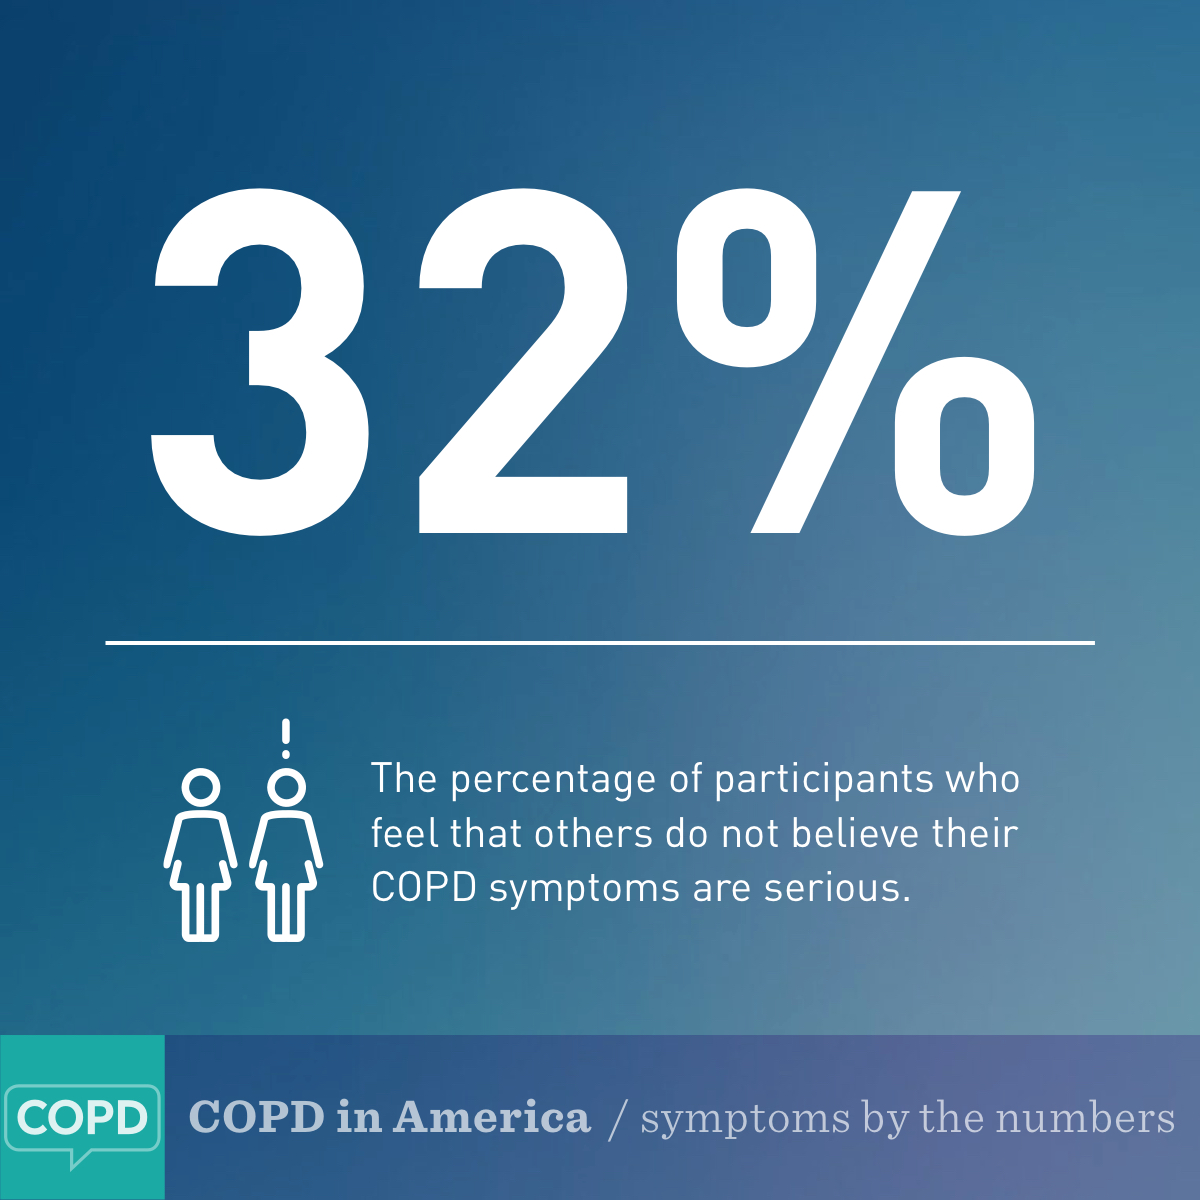 COPD symptoms by the numbers